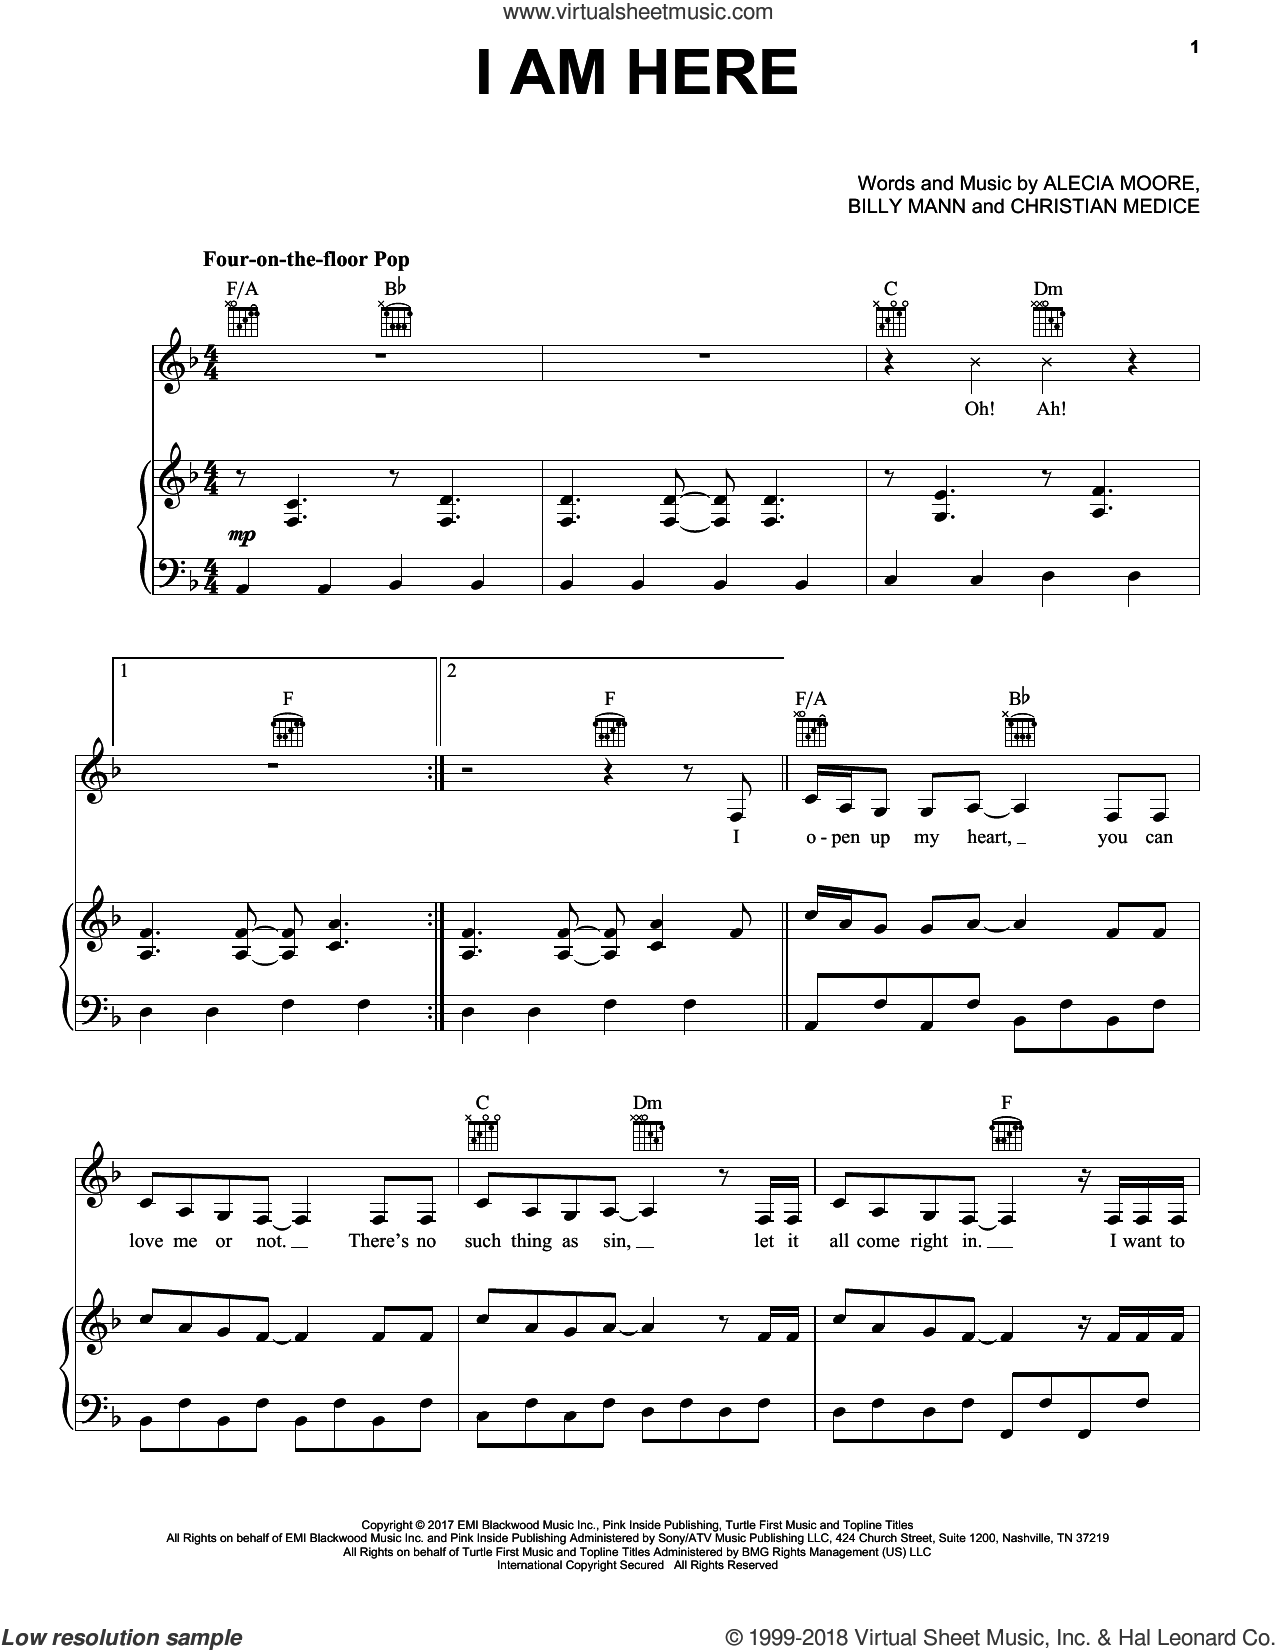 I Am Here sheet music for voice, piano or guitar , Alecia Moore, BILLY MANN and Christian Medice, intermediate skill level